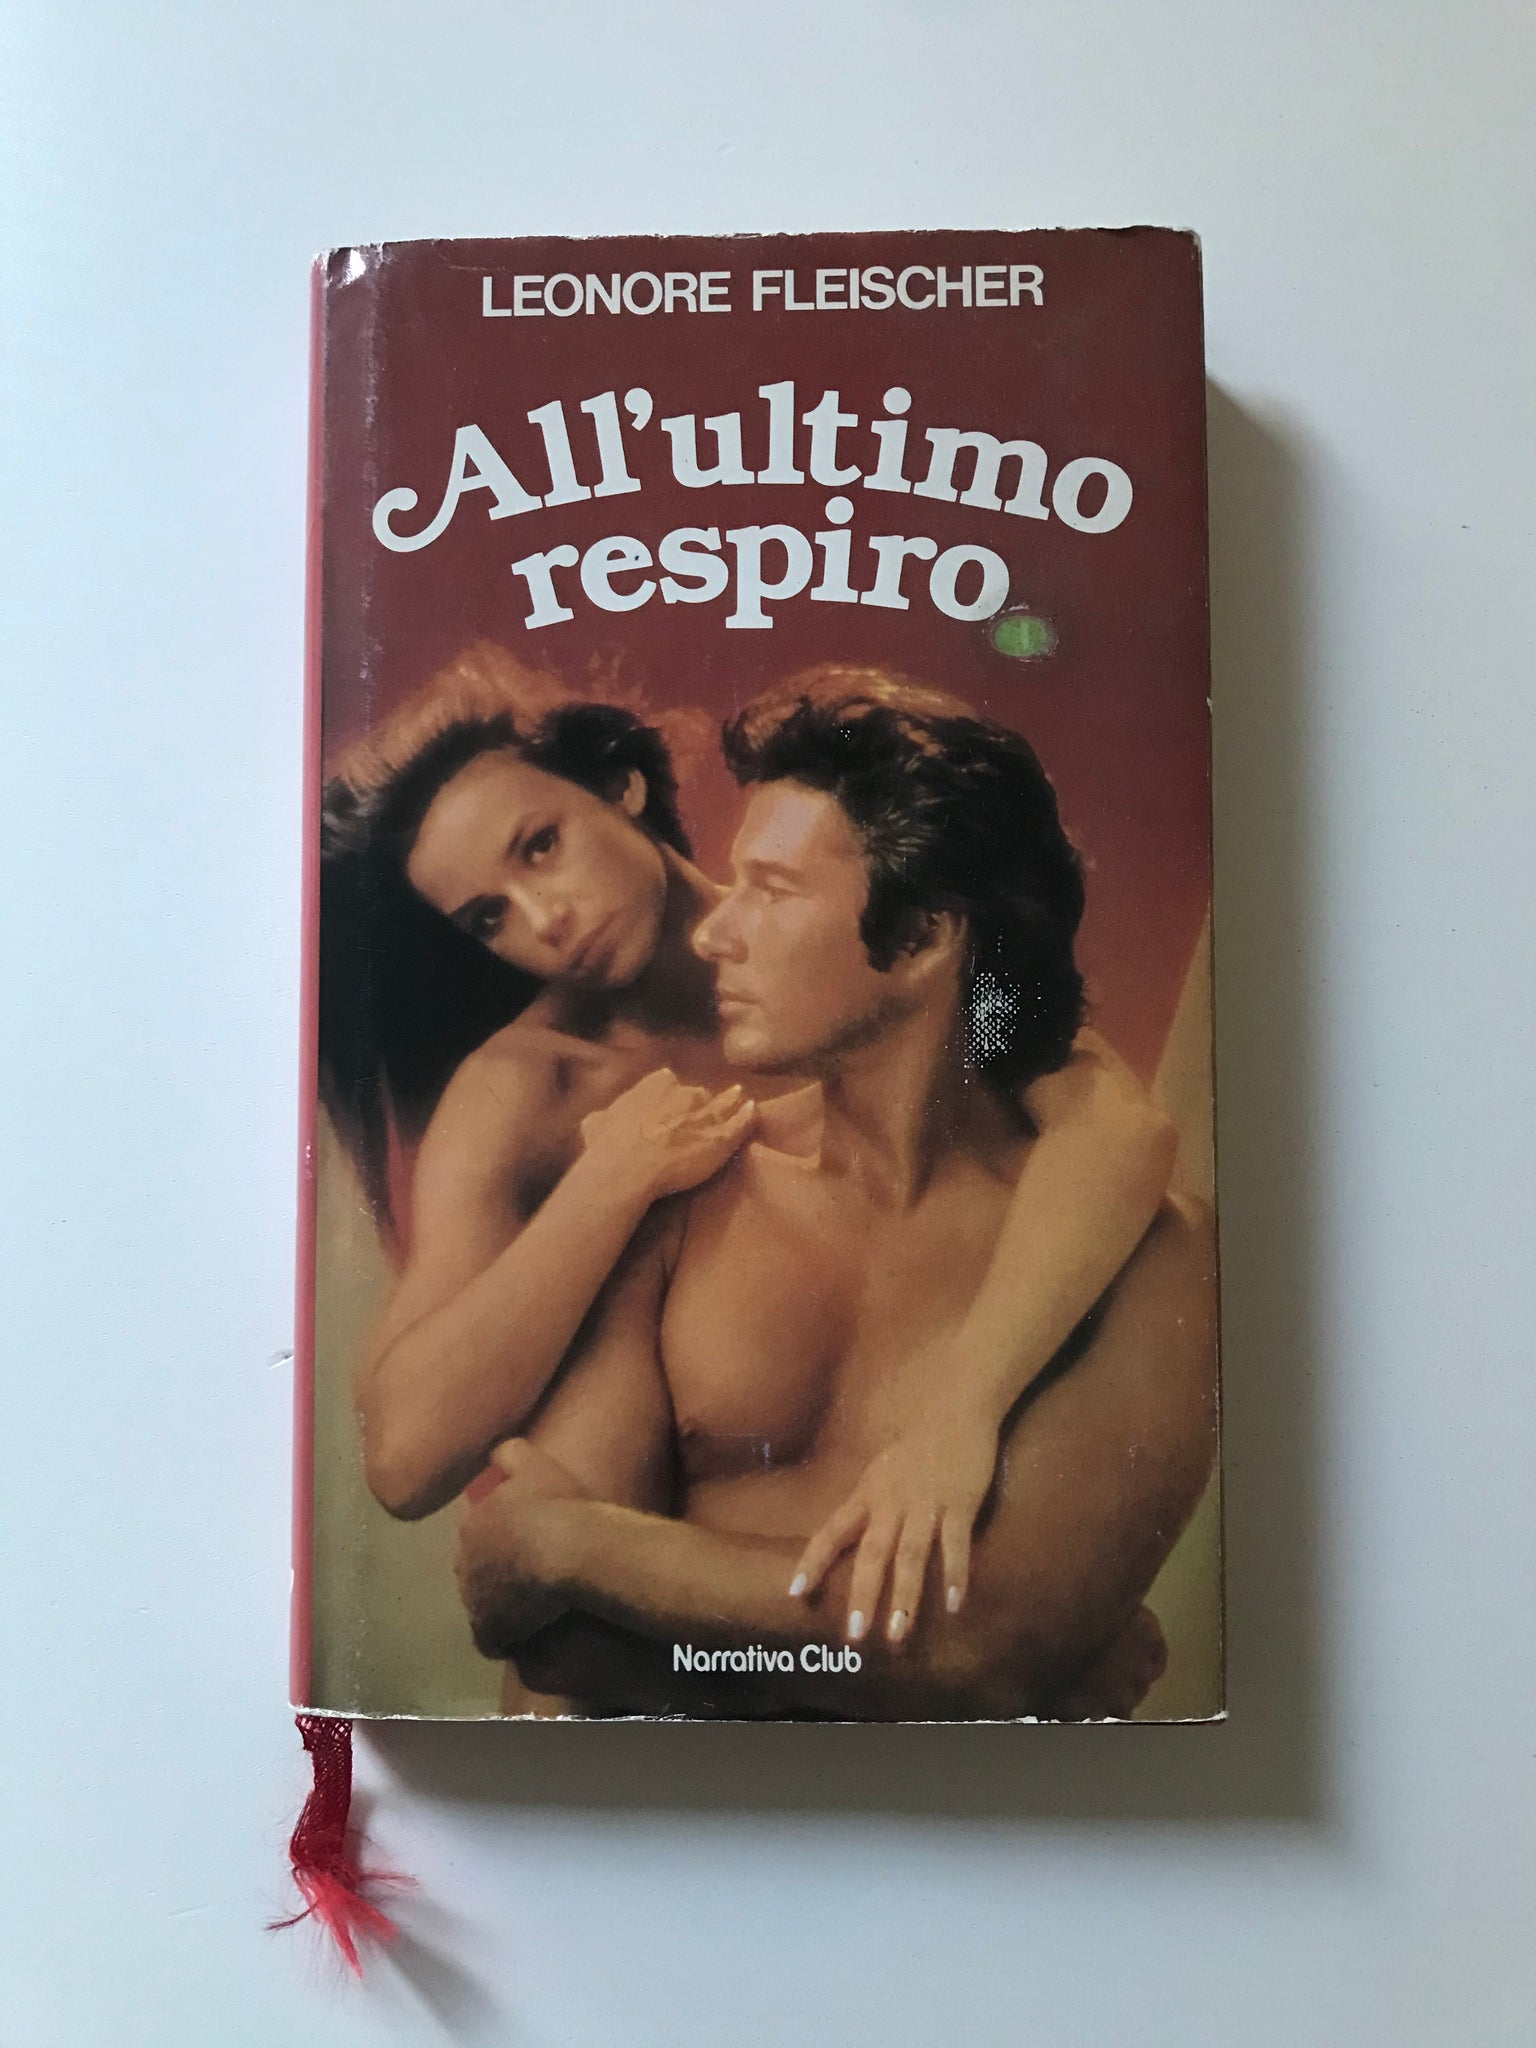 Leonore Fleischer - All'ultimo respiro